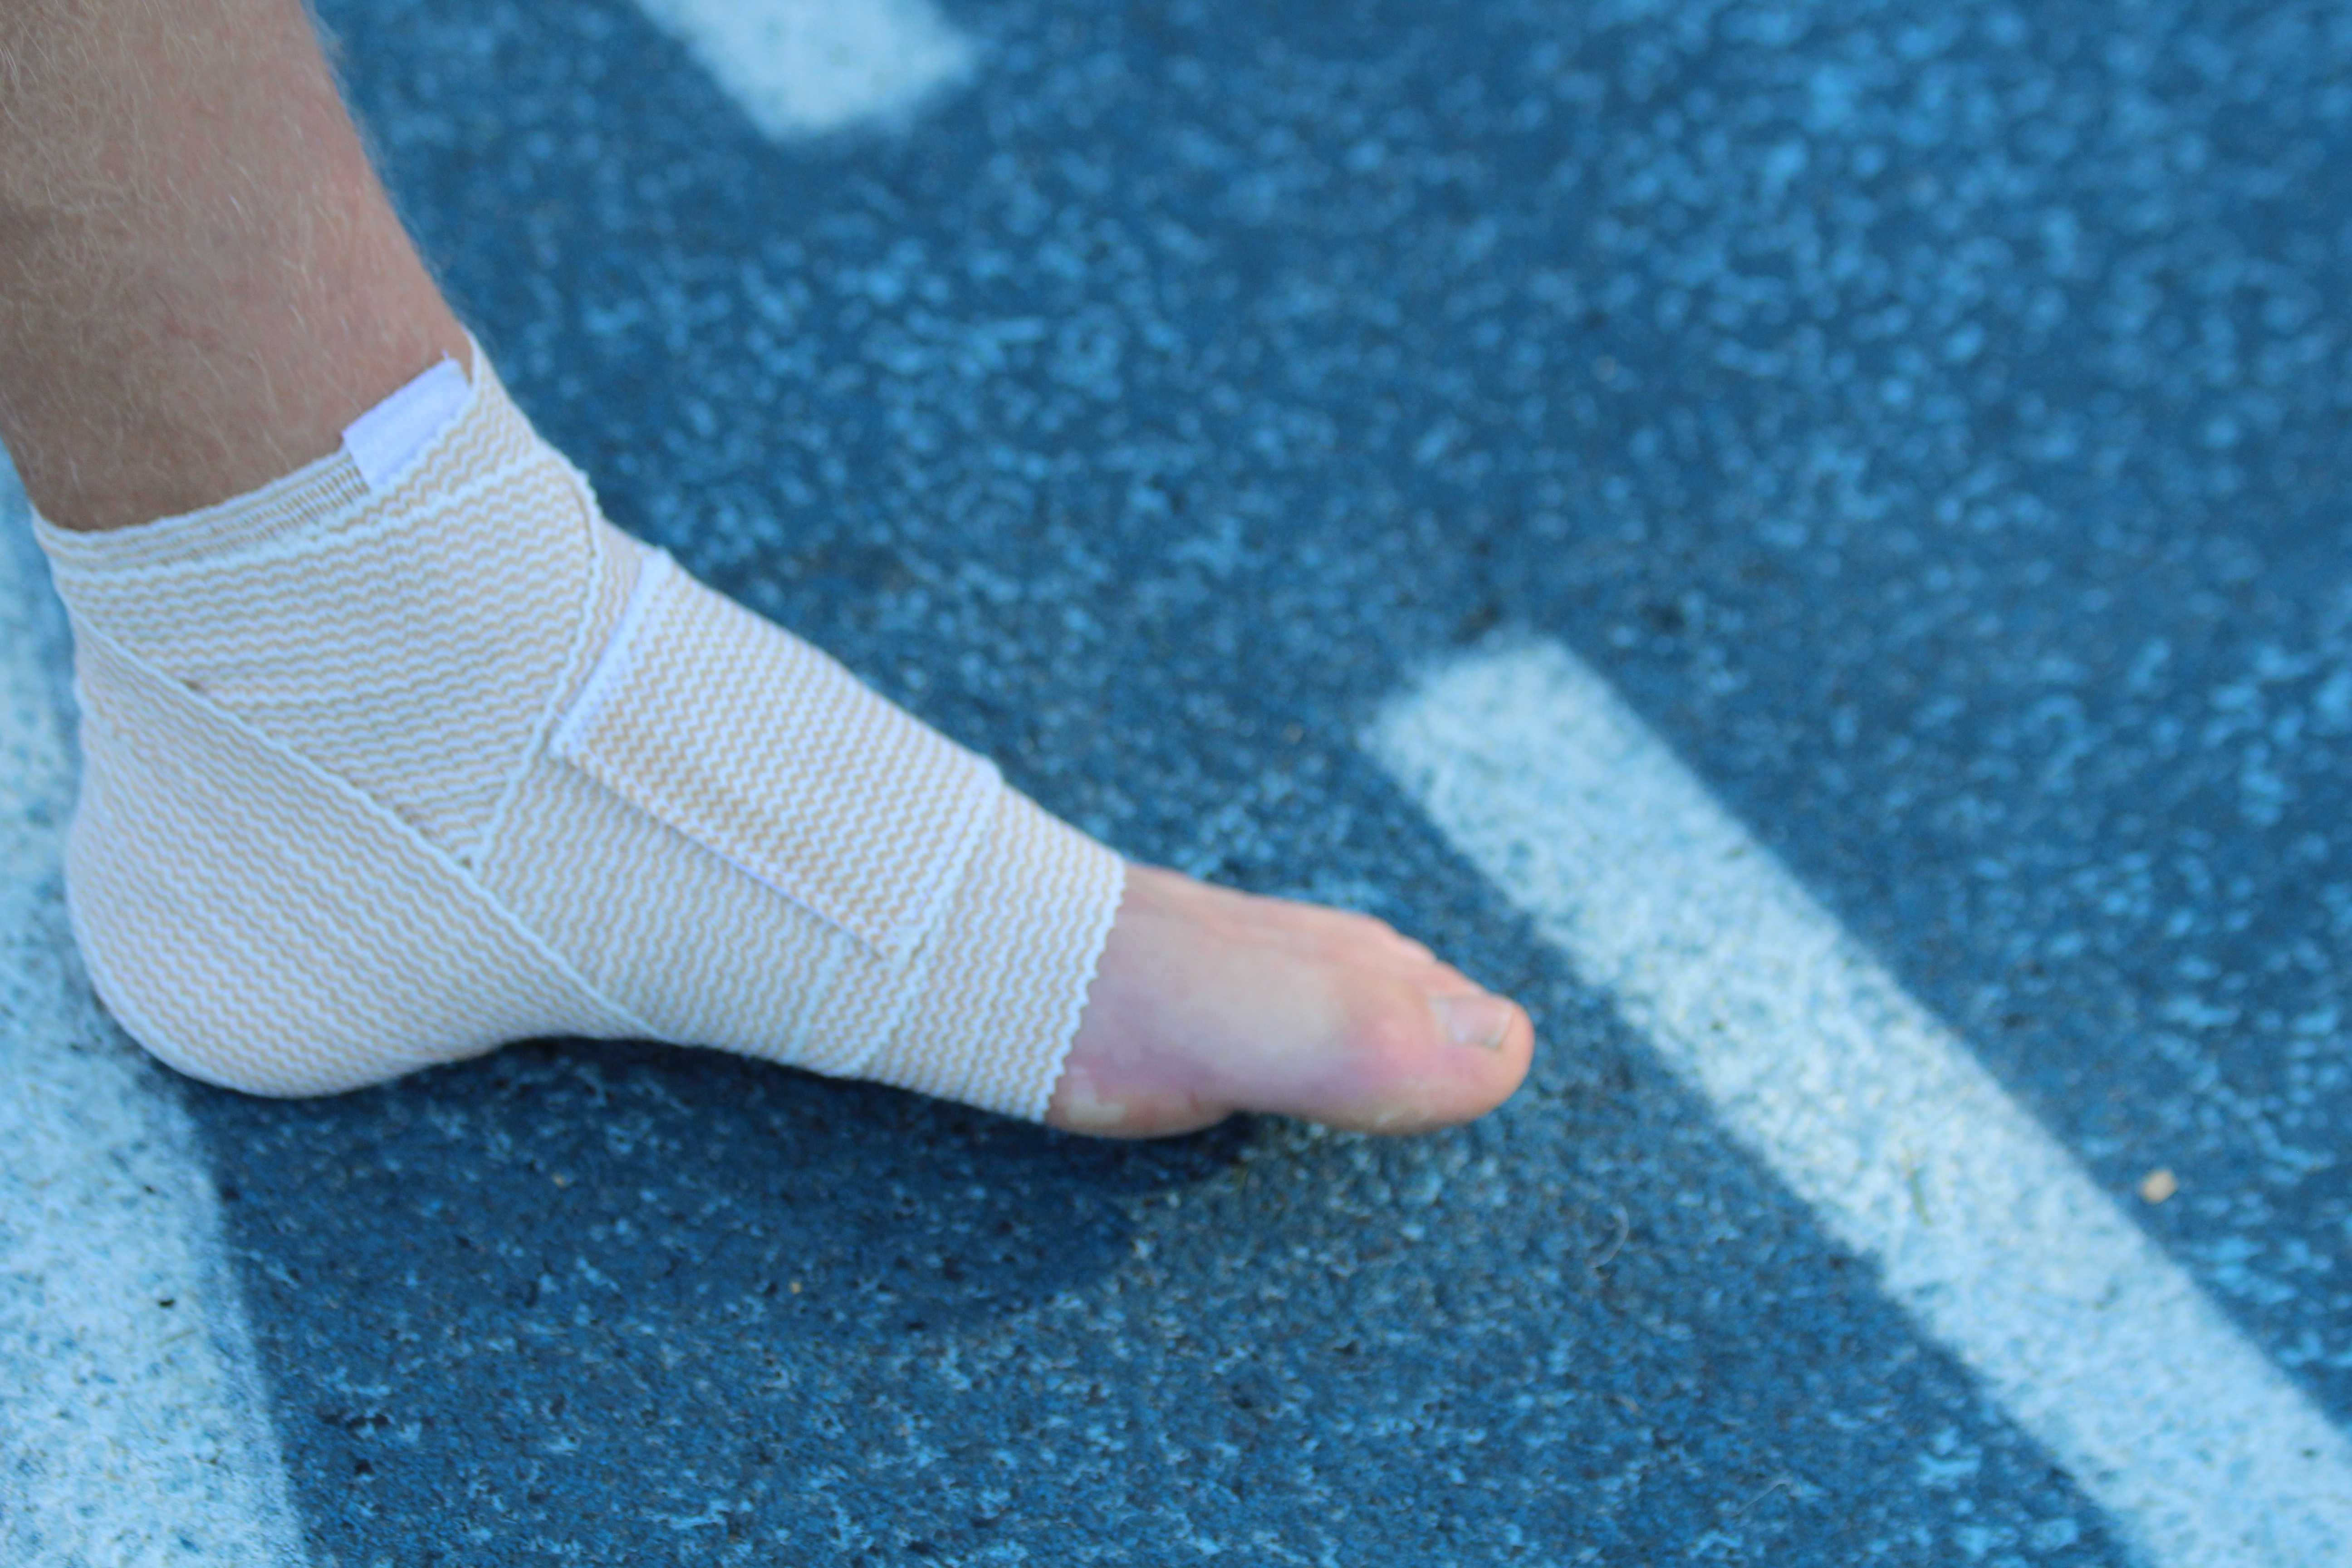 Boys Varsity Cross Country Runner Franklin Rice twisted his ankle, injuring it further by continuing to run on it.